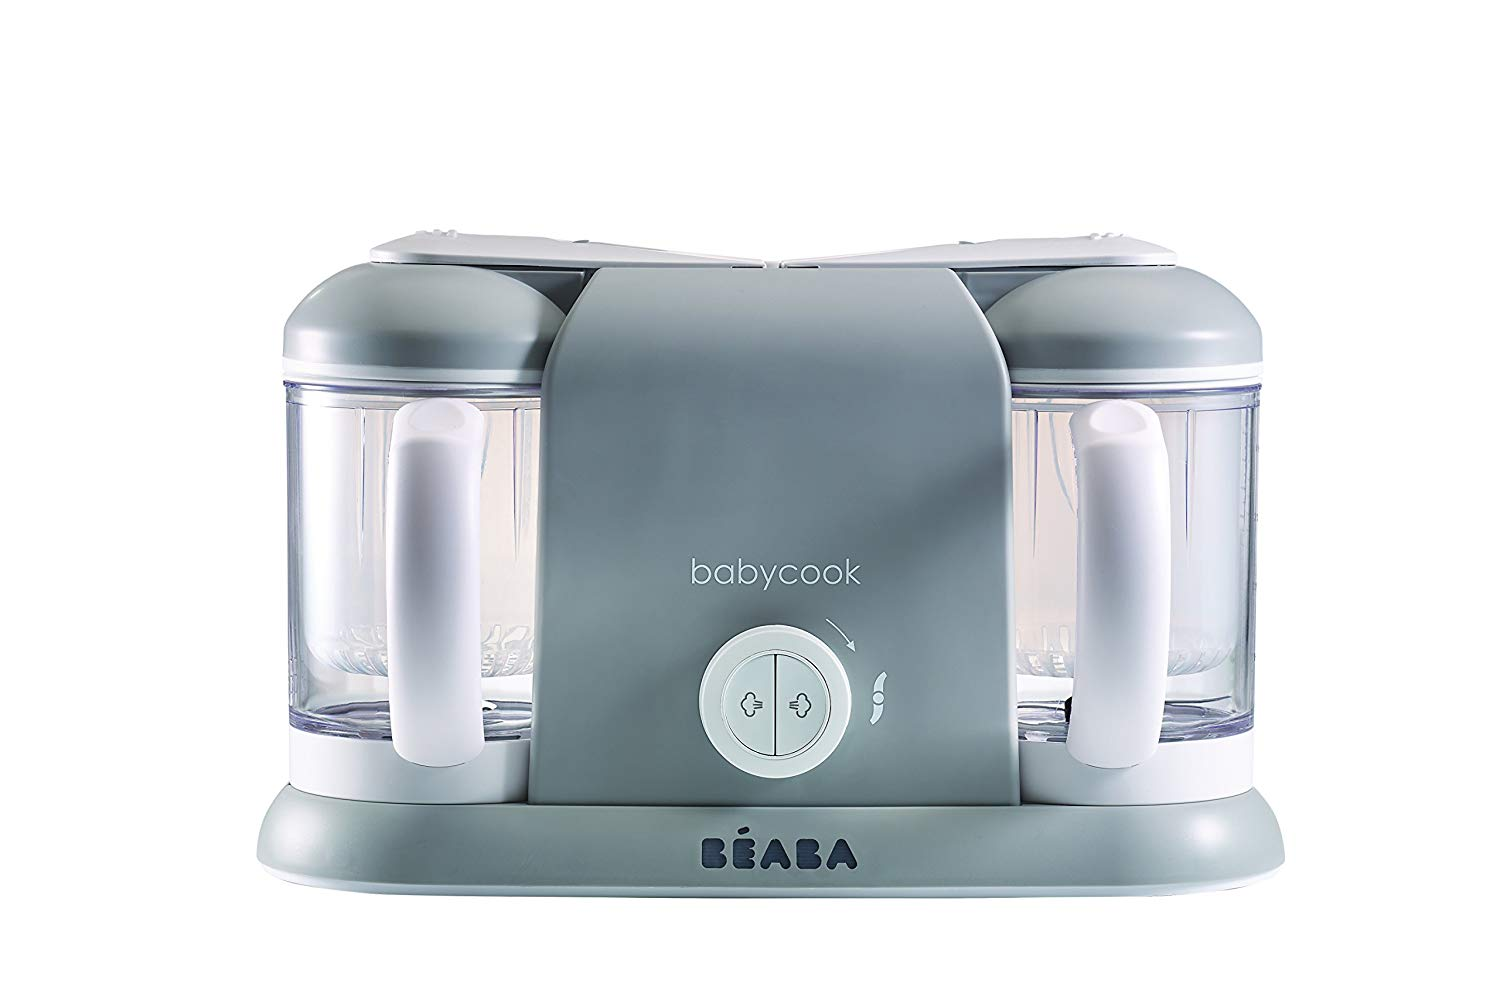 BEABA Babycook Plus 4 in 1 Steam Cooker and Blender